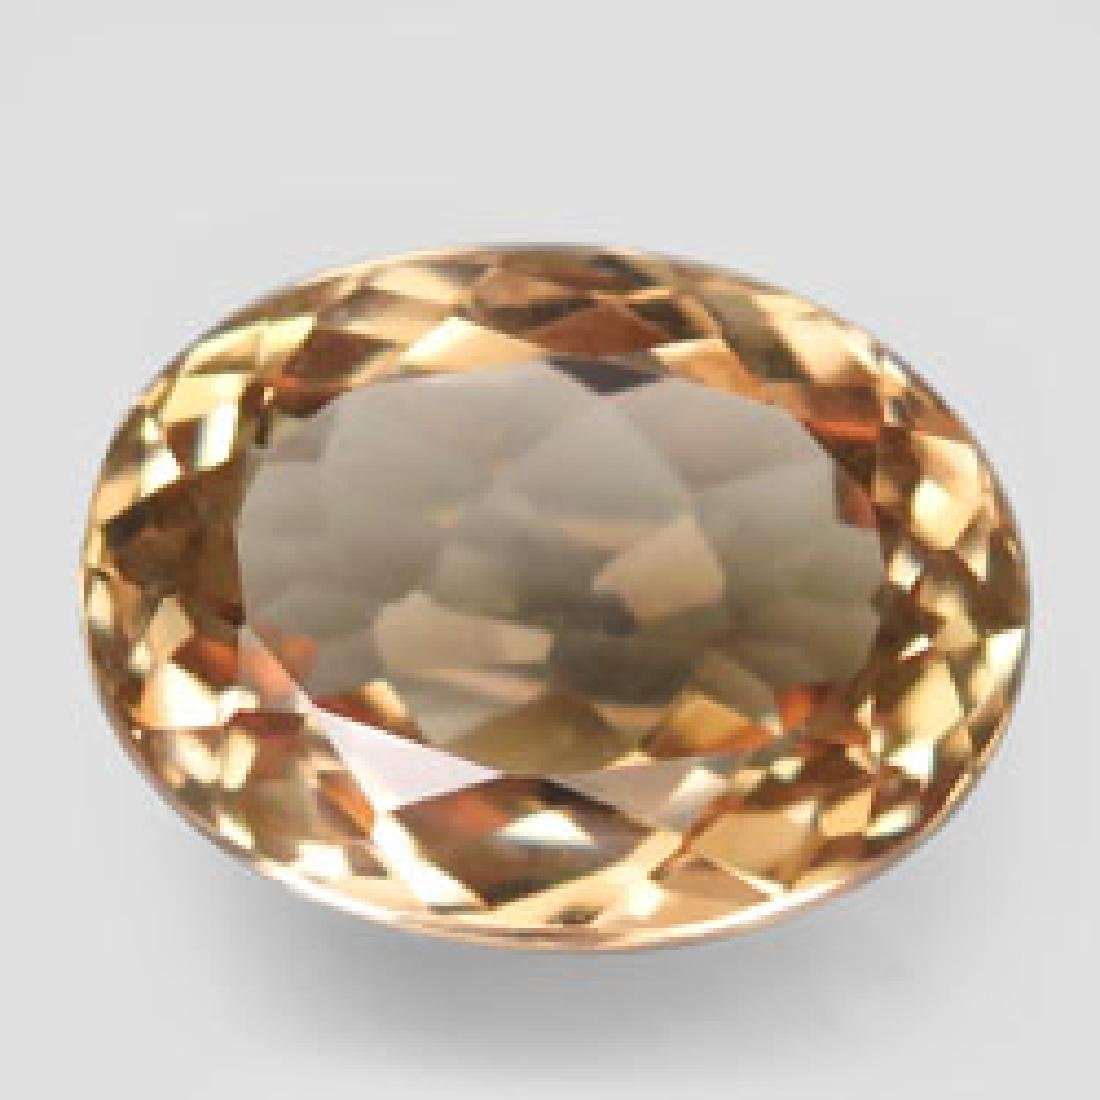 5.9ct 100%Natural Top Imperial Topaz Unheated